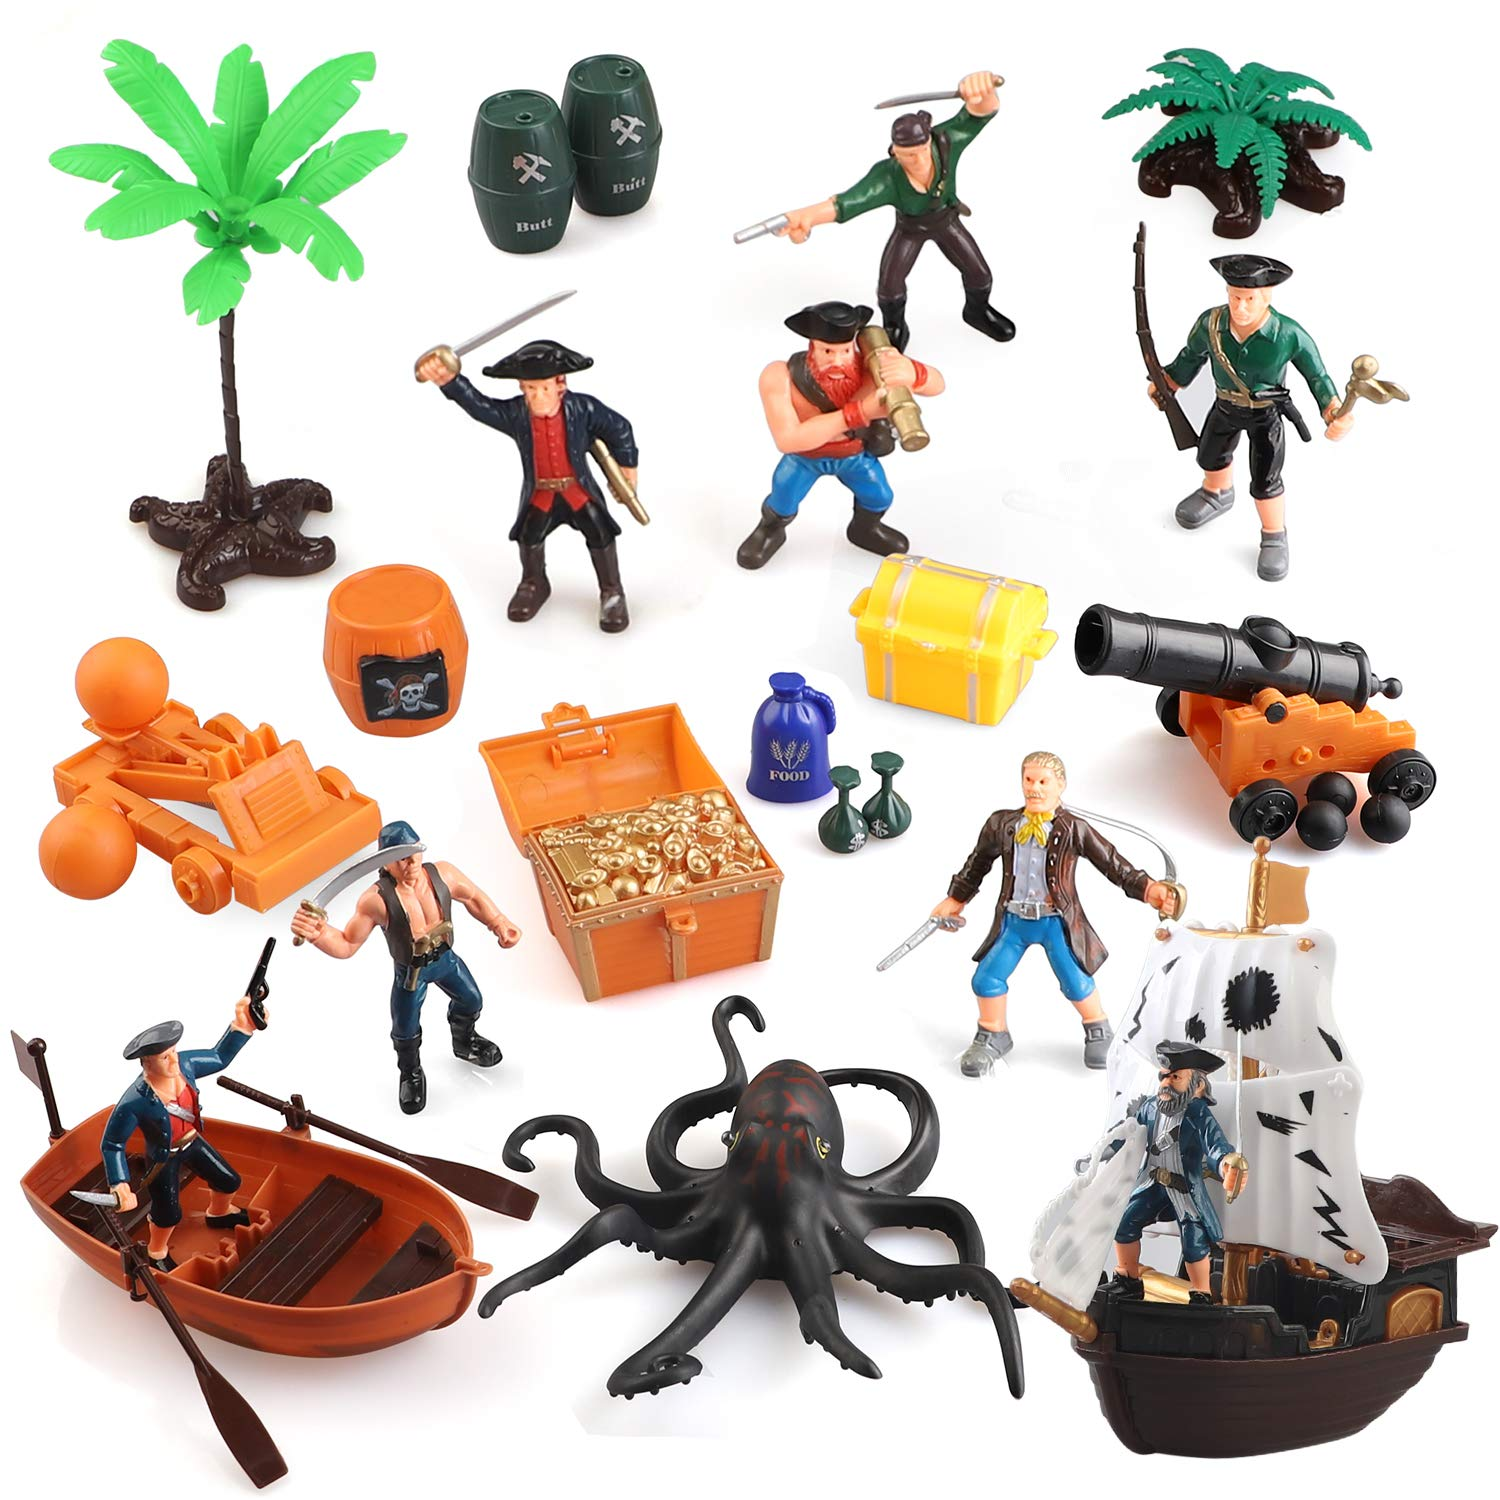 BeebeeRun Pirate Action Figures Playset,Educational Bucket Toys of Pirate Toy with Octopus,Pirate Ship and Other Accessories,War Game Toys for Boys and Kids